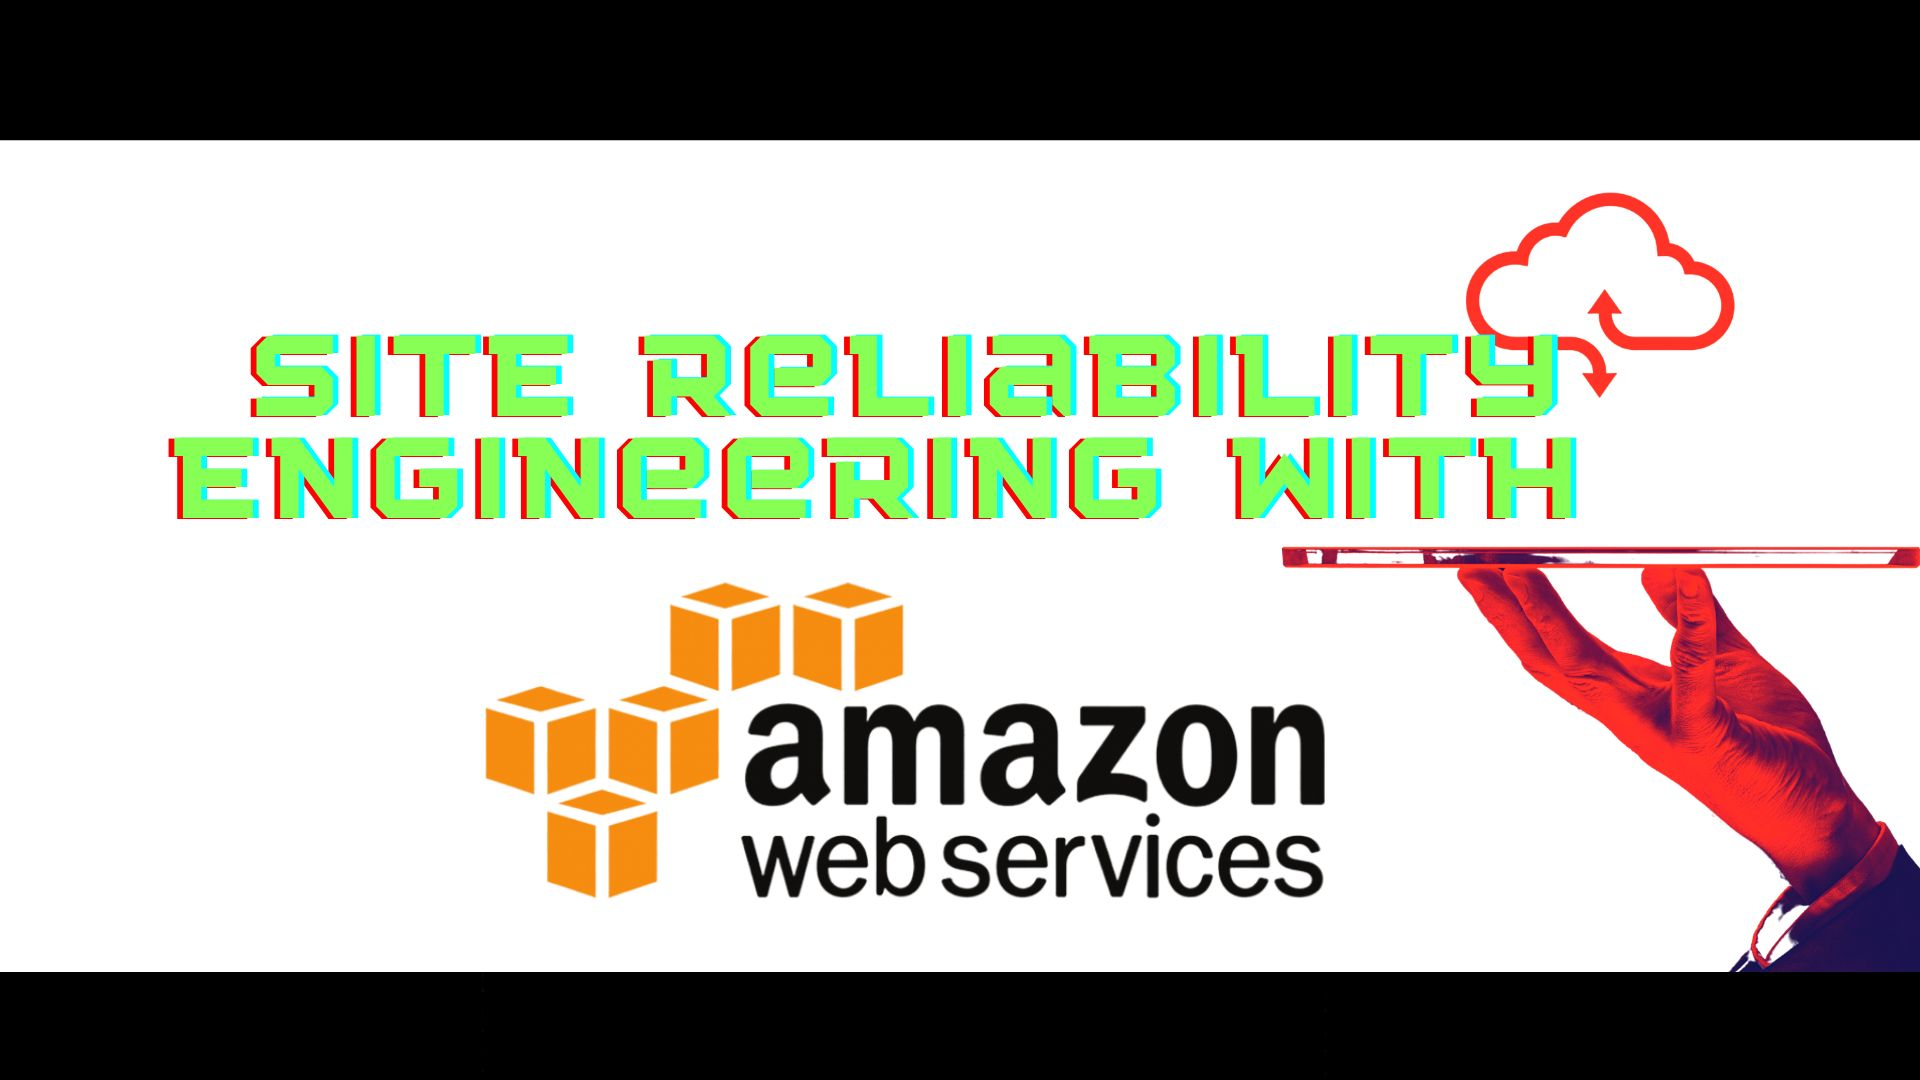 /site-reliability-engineering-with-amazon-web-services-7w10377u feature image